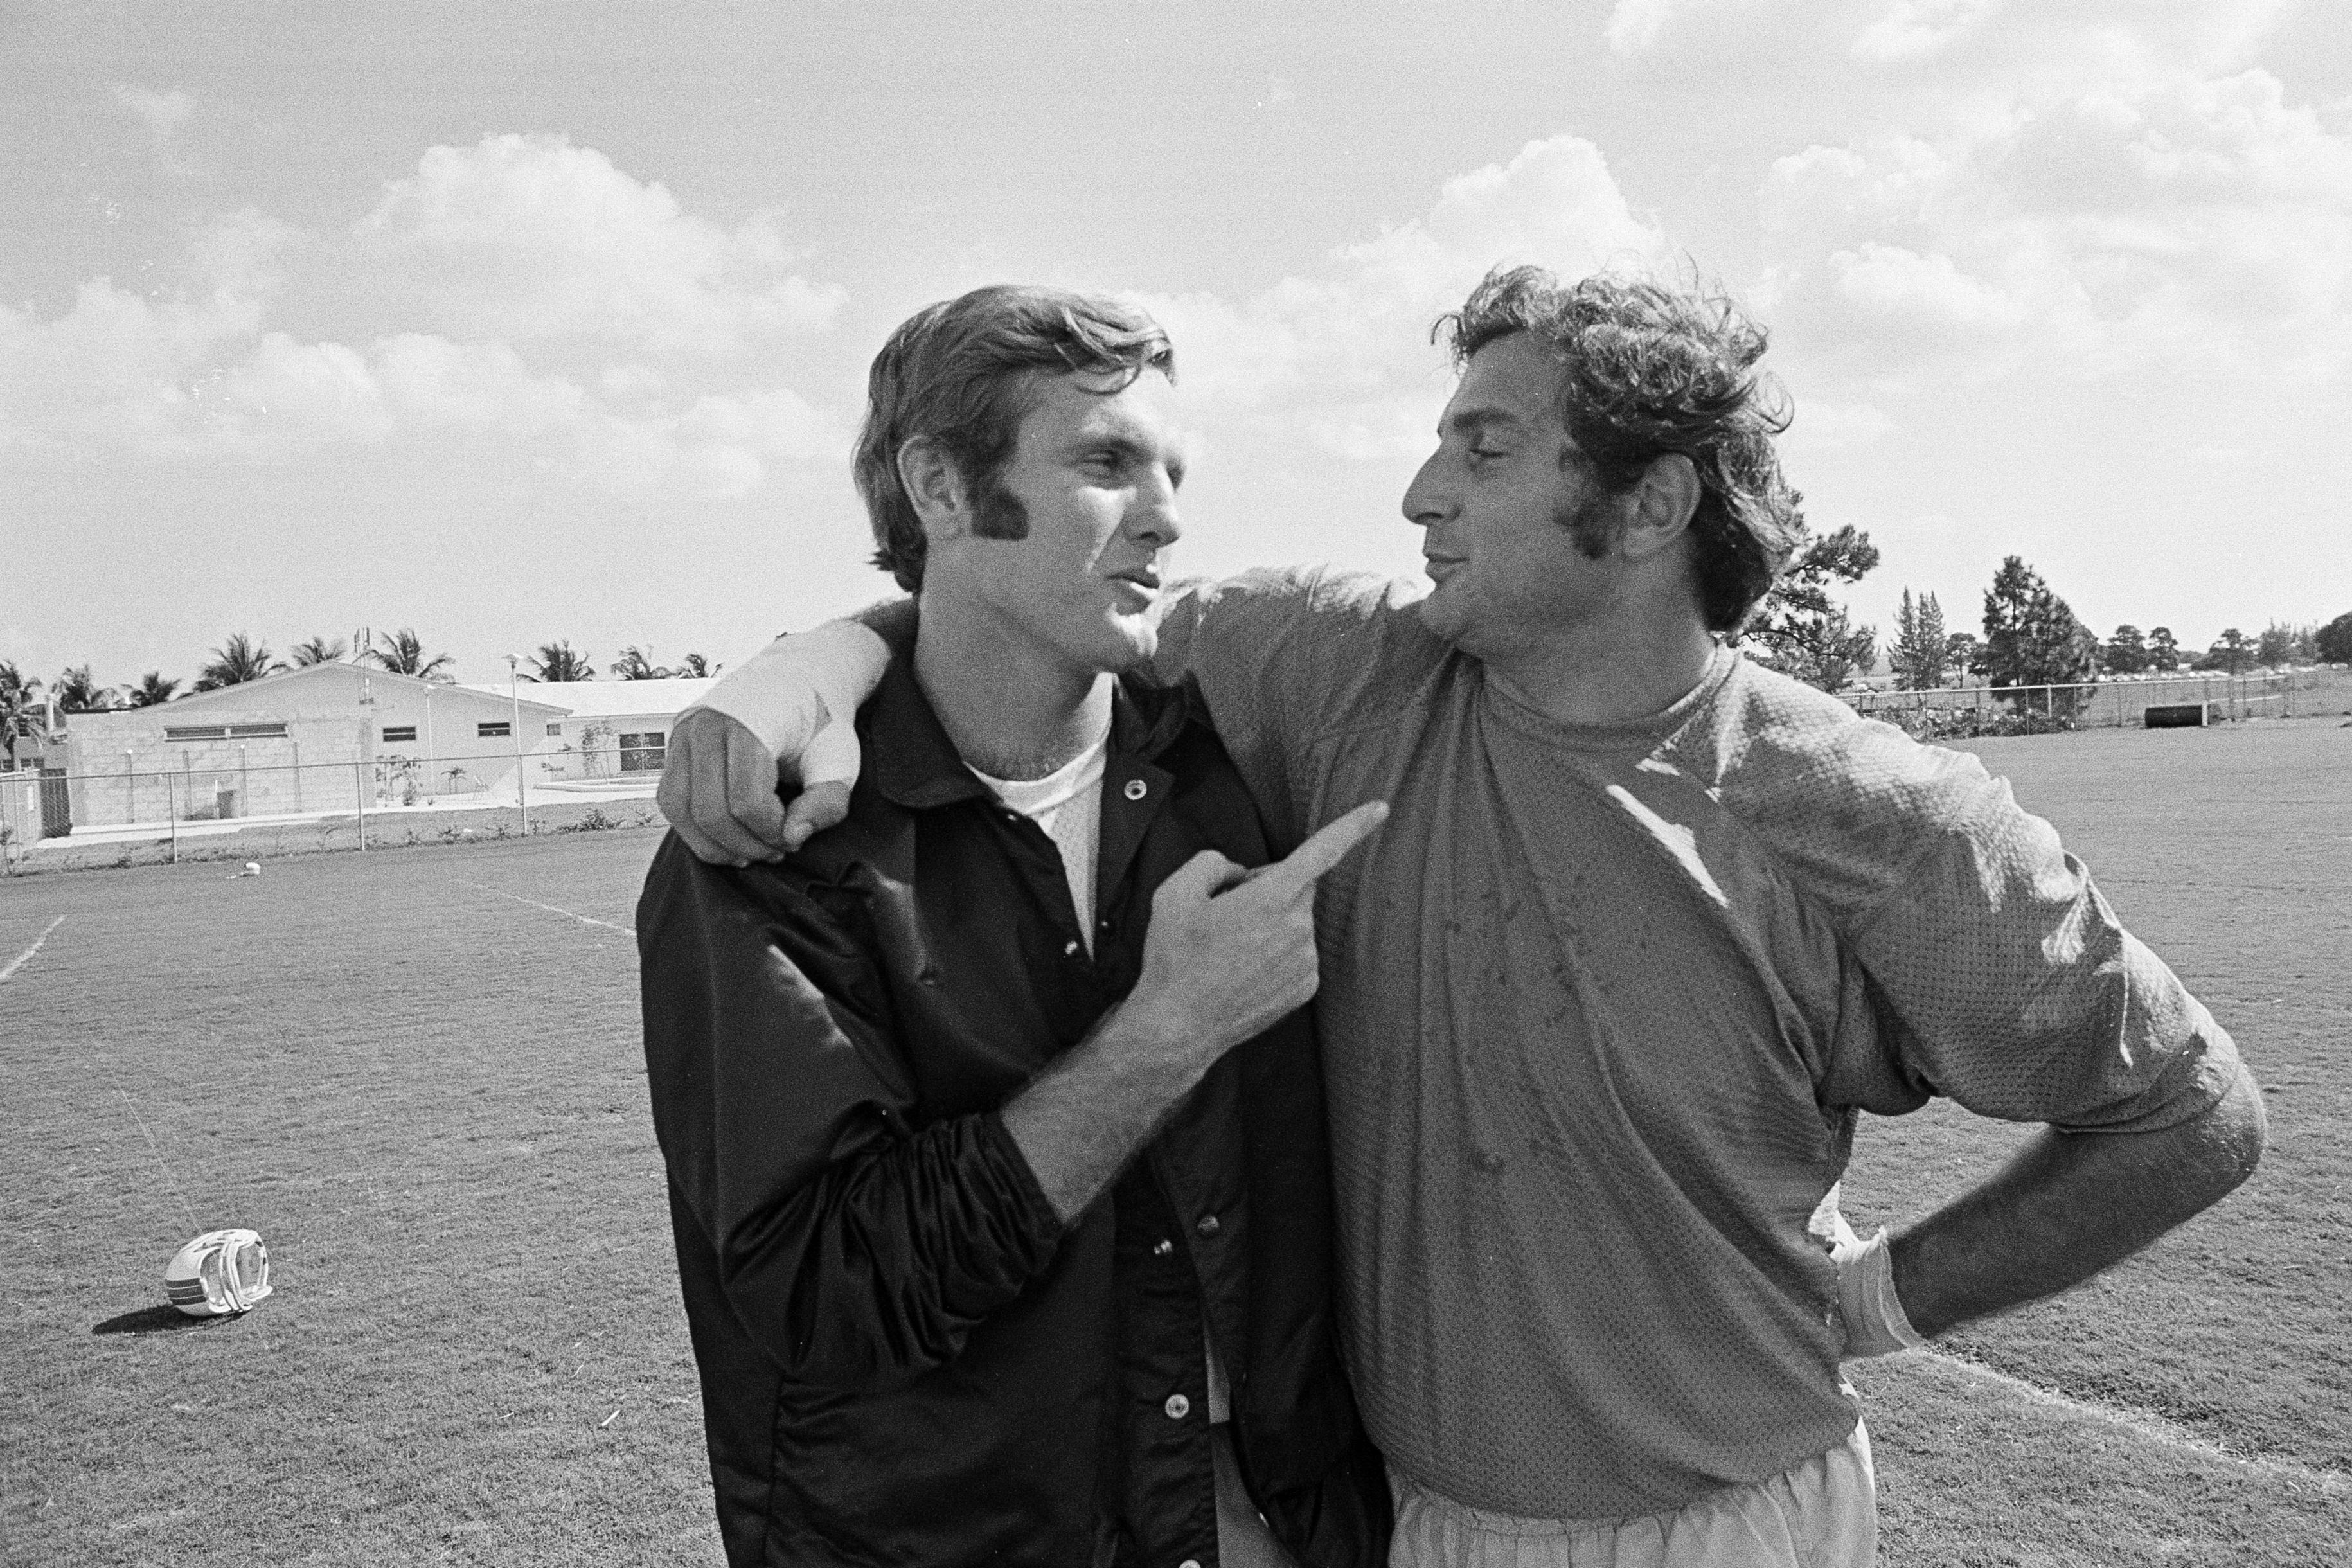 FILE - In this Jan. 5, 1972, file photo, Miami quarterback Bob Griese, left, and linebacker Nick Buoniconti talk about the upcoming Super Bowl against Dallas, in Miami. Pro Football Hall of Fame middle linebacker Nick Buoniconti, an undersized overachiever who helped lead the Miami Dolphins to the NFL's only perfect season, has died at the age of 78. Bruce Bobbins, a spokesman for the Buoniconti family, said he died Tuesday, July 30, 2019, in Bridgehampton, N.Y. (AP Photo/File)